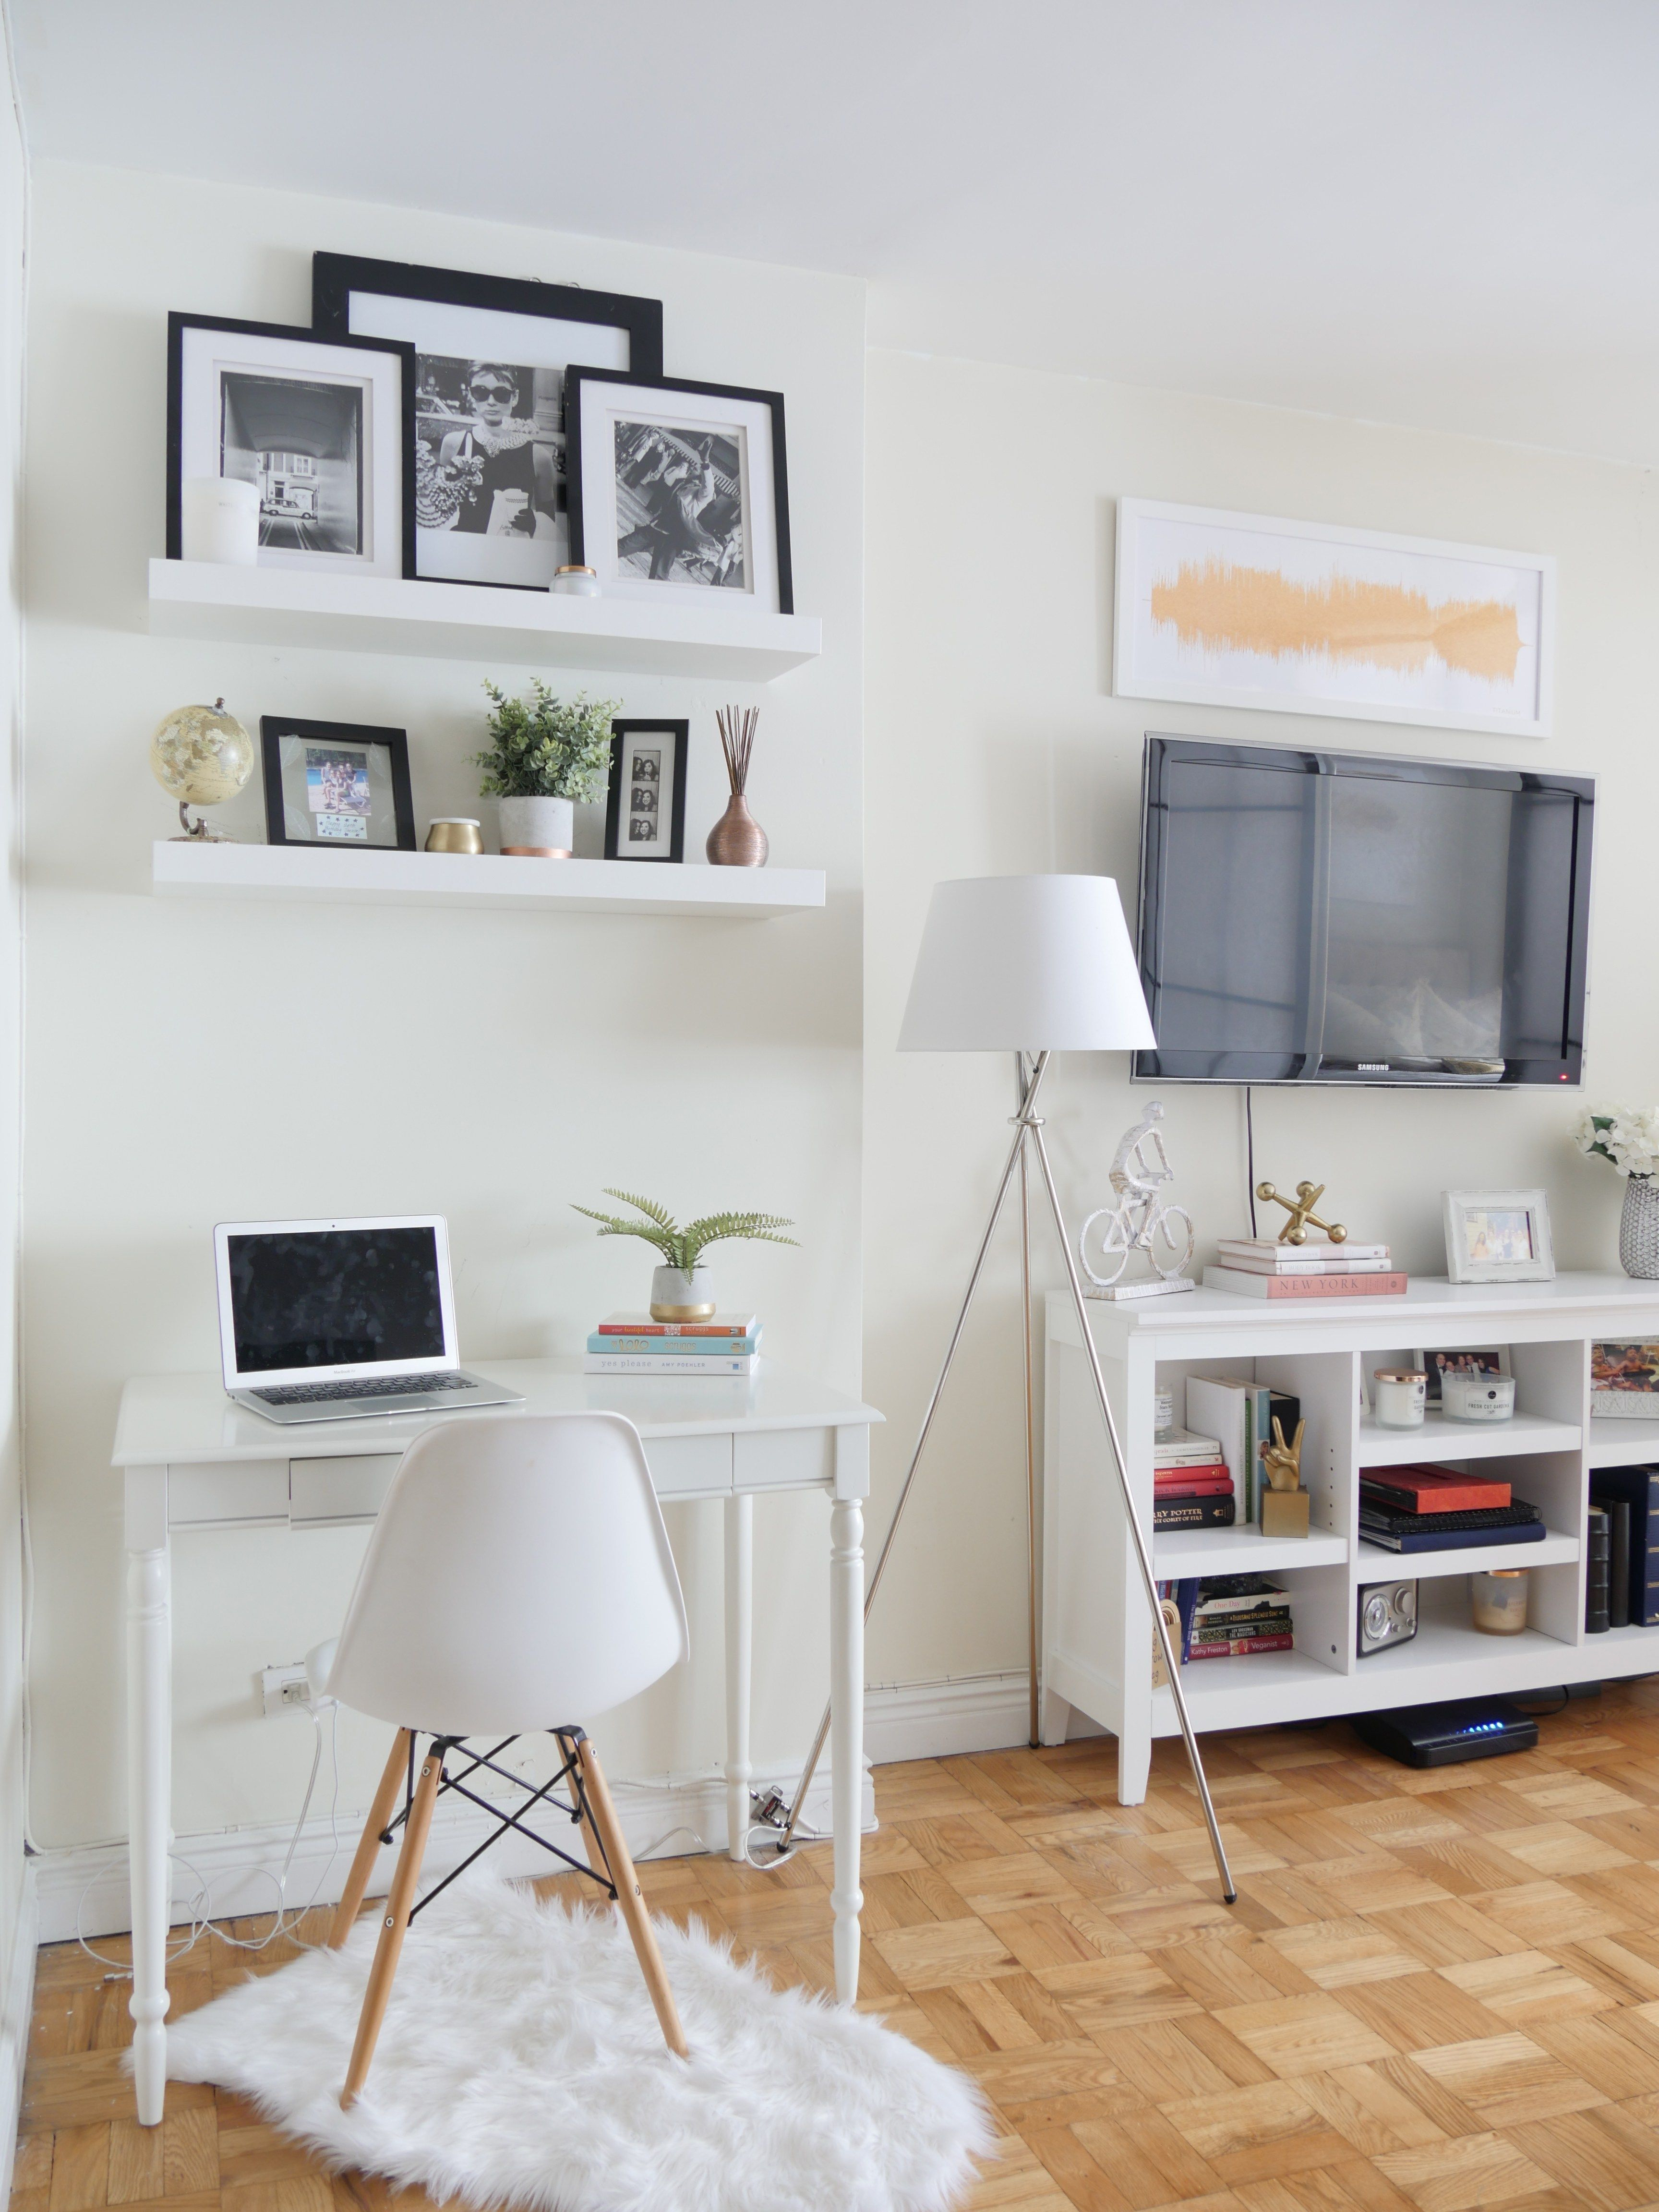 How To Decorate The Walls In Your Rented Space City Chic Decor Apartment Decorating Rental Nyc Studio Apartments Bookshelves In Living Room